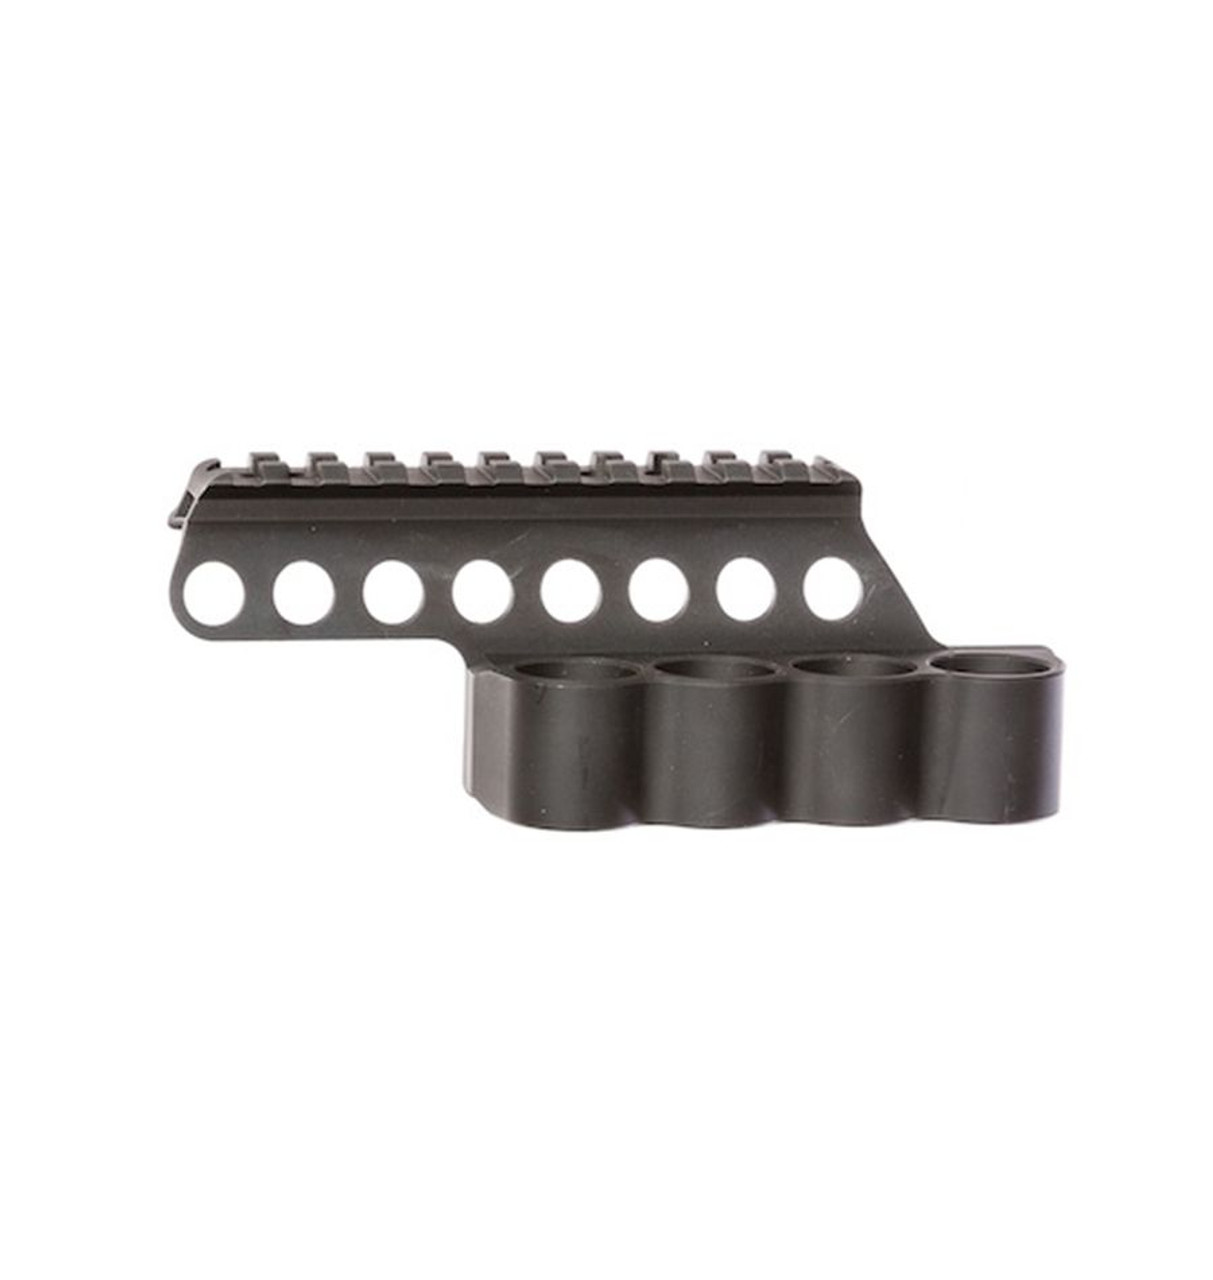 Mesa Tactical SureShell Carrier and Rail for Mossberg 500 12 Ga